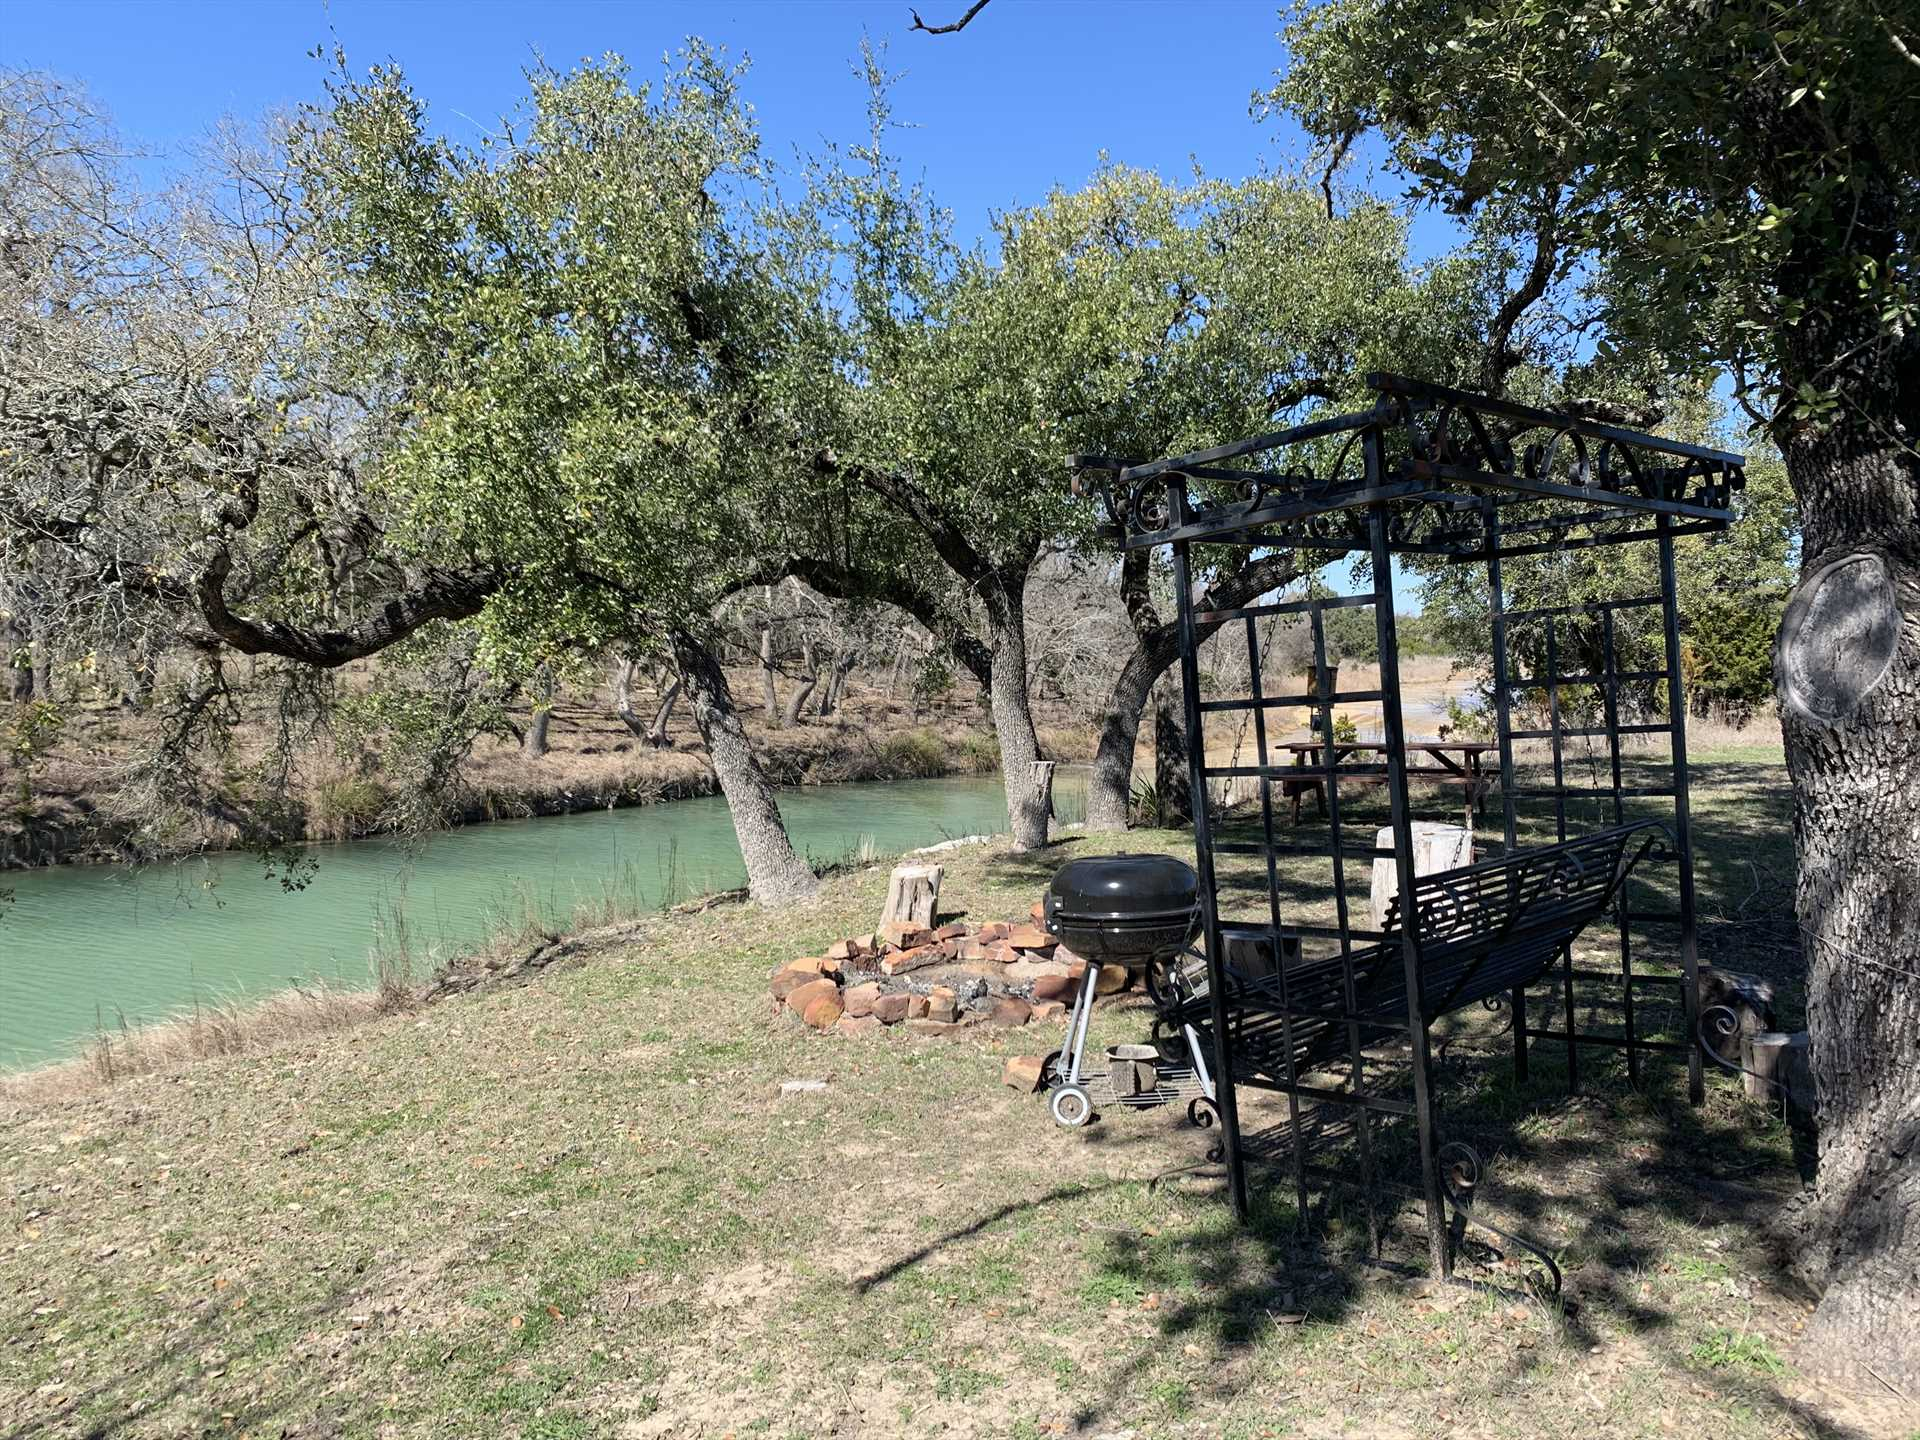 Nothing satisfies like a grilled meal by the creekside in the fresh Hill Country air, or a romantic sit-down on the yard swing!